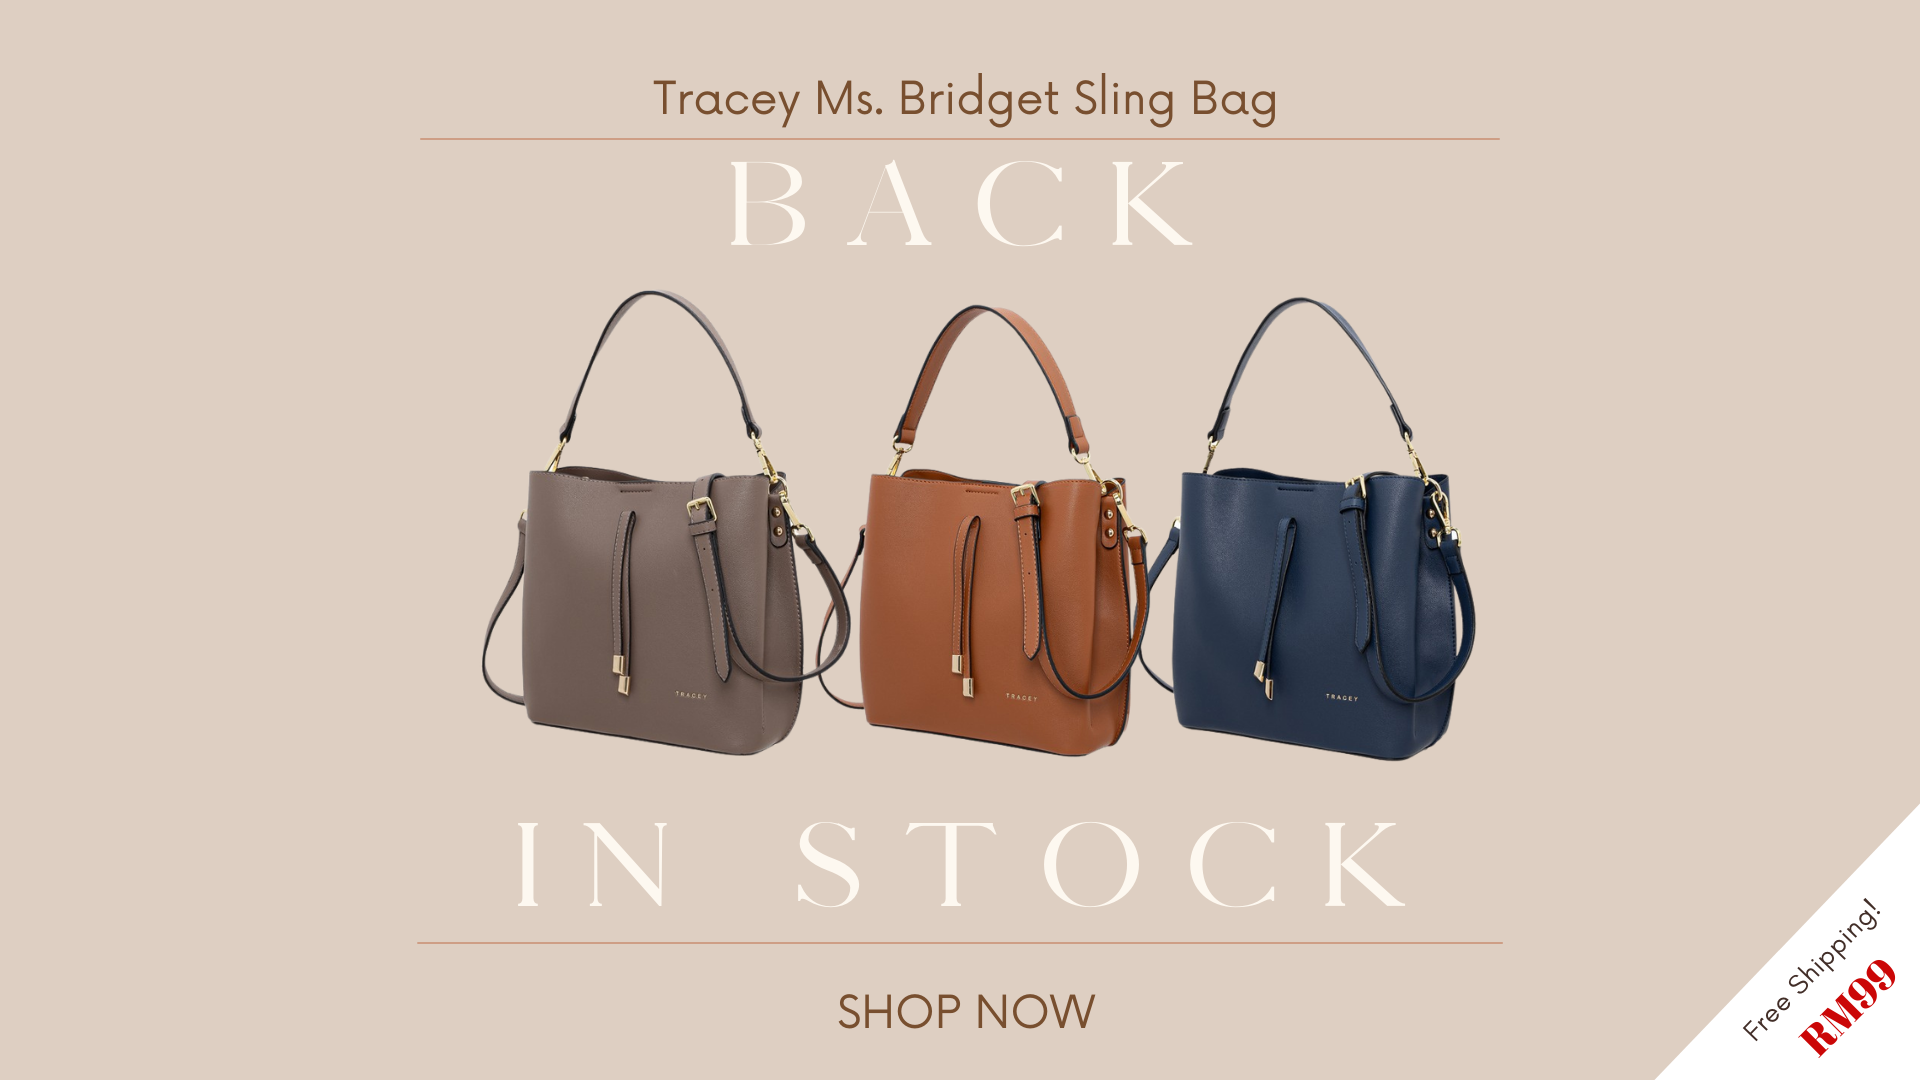 Tracey Ms. Bridget Sling Bag